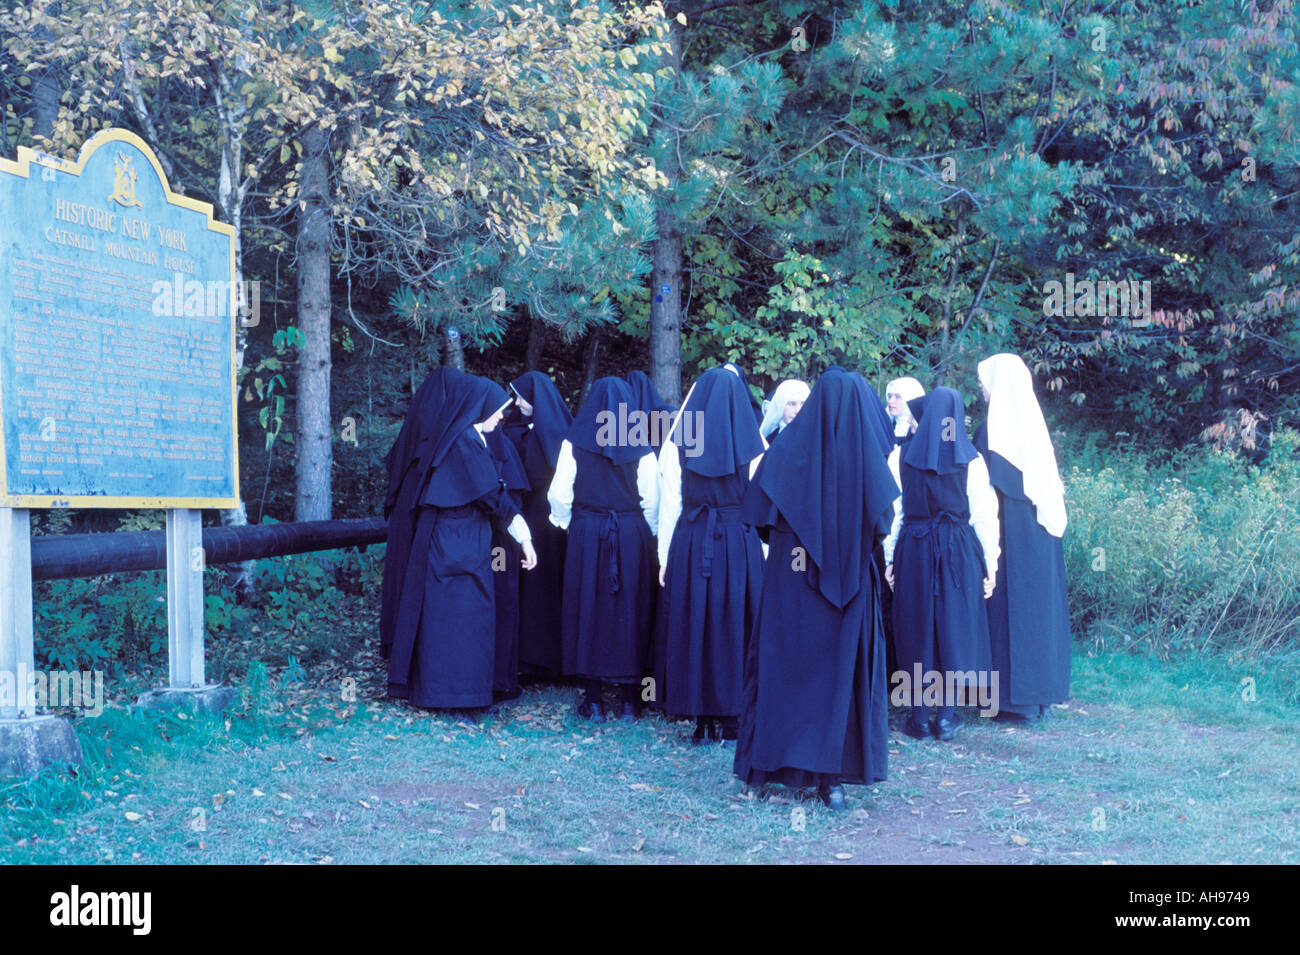 A group of nuns prepare for a hike in the Catskill Mountains Boulder Rock Trail South and North Lake Catskill State Park US - Stock Image